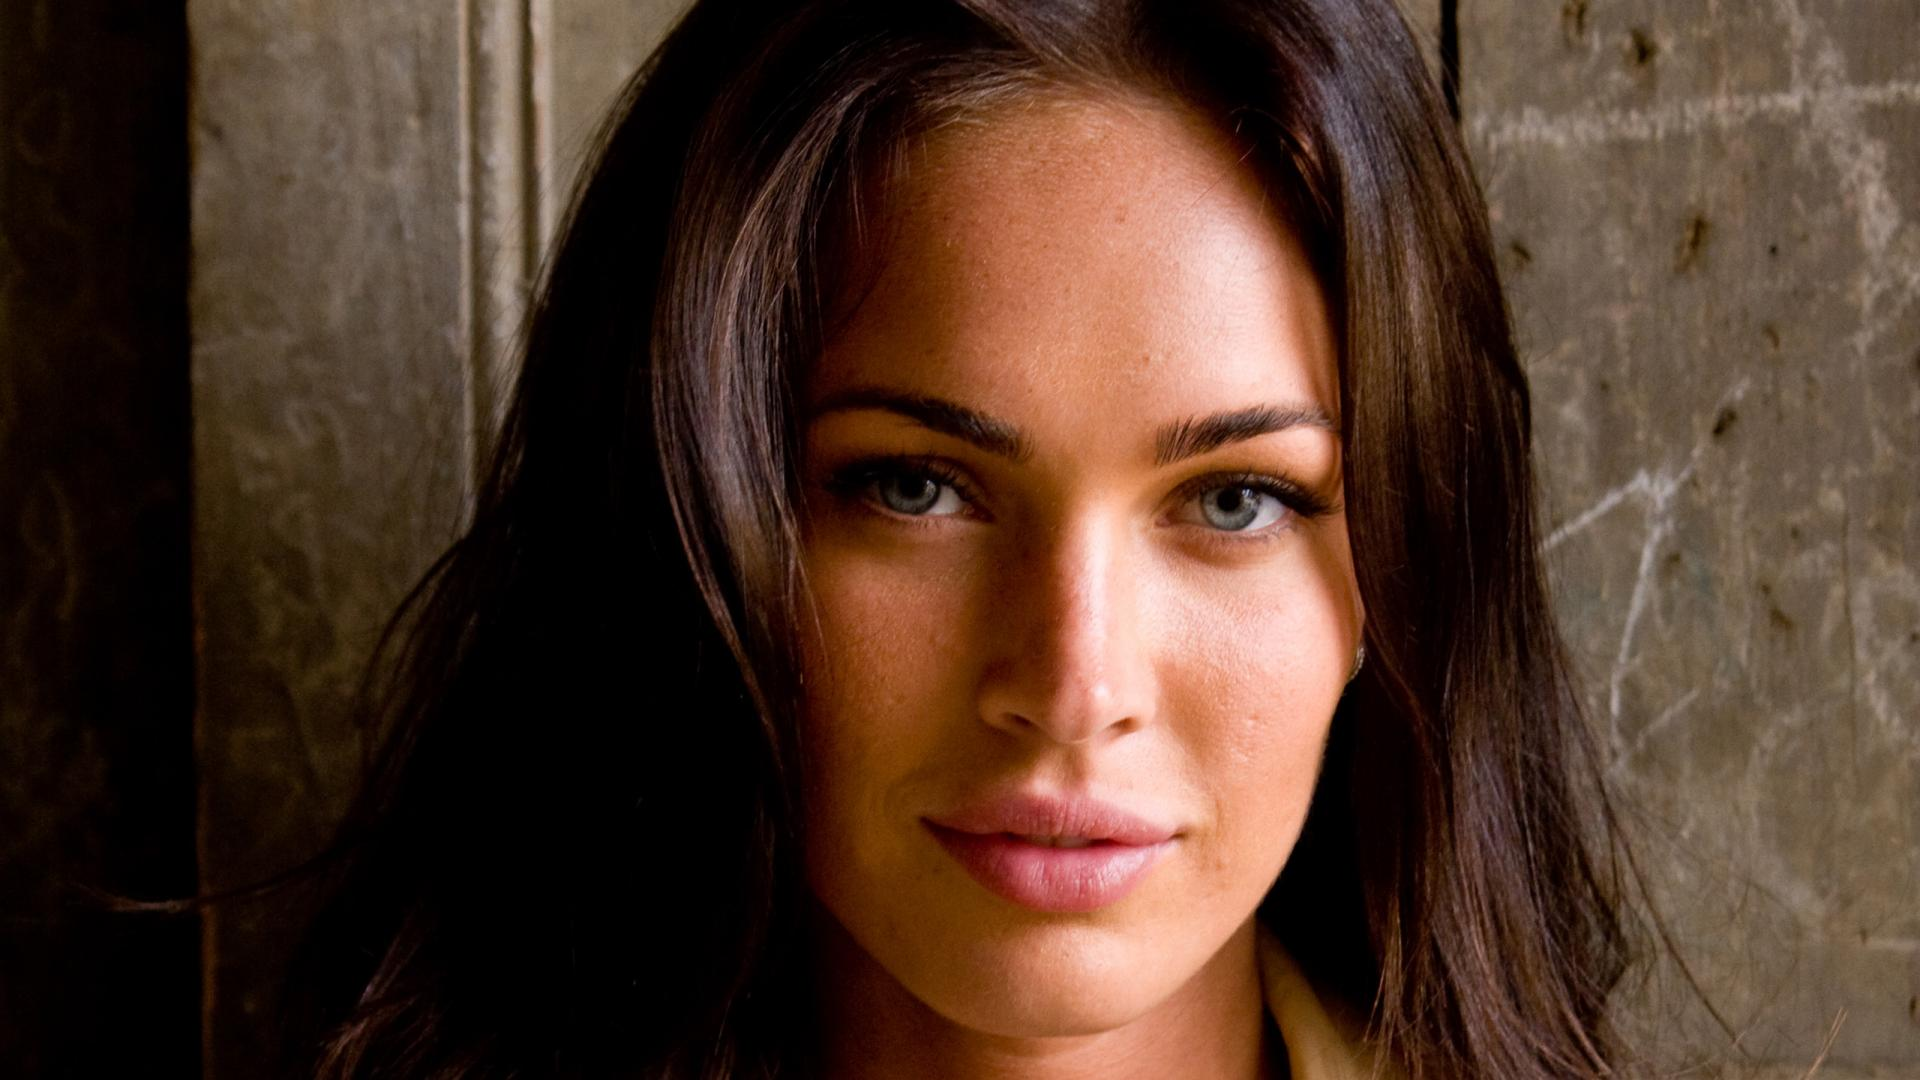 megan fox wallpaper 9jpg 1920x1080